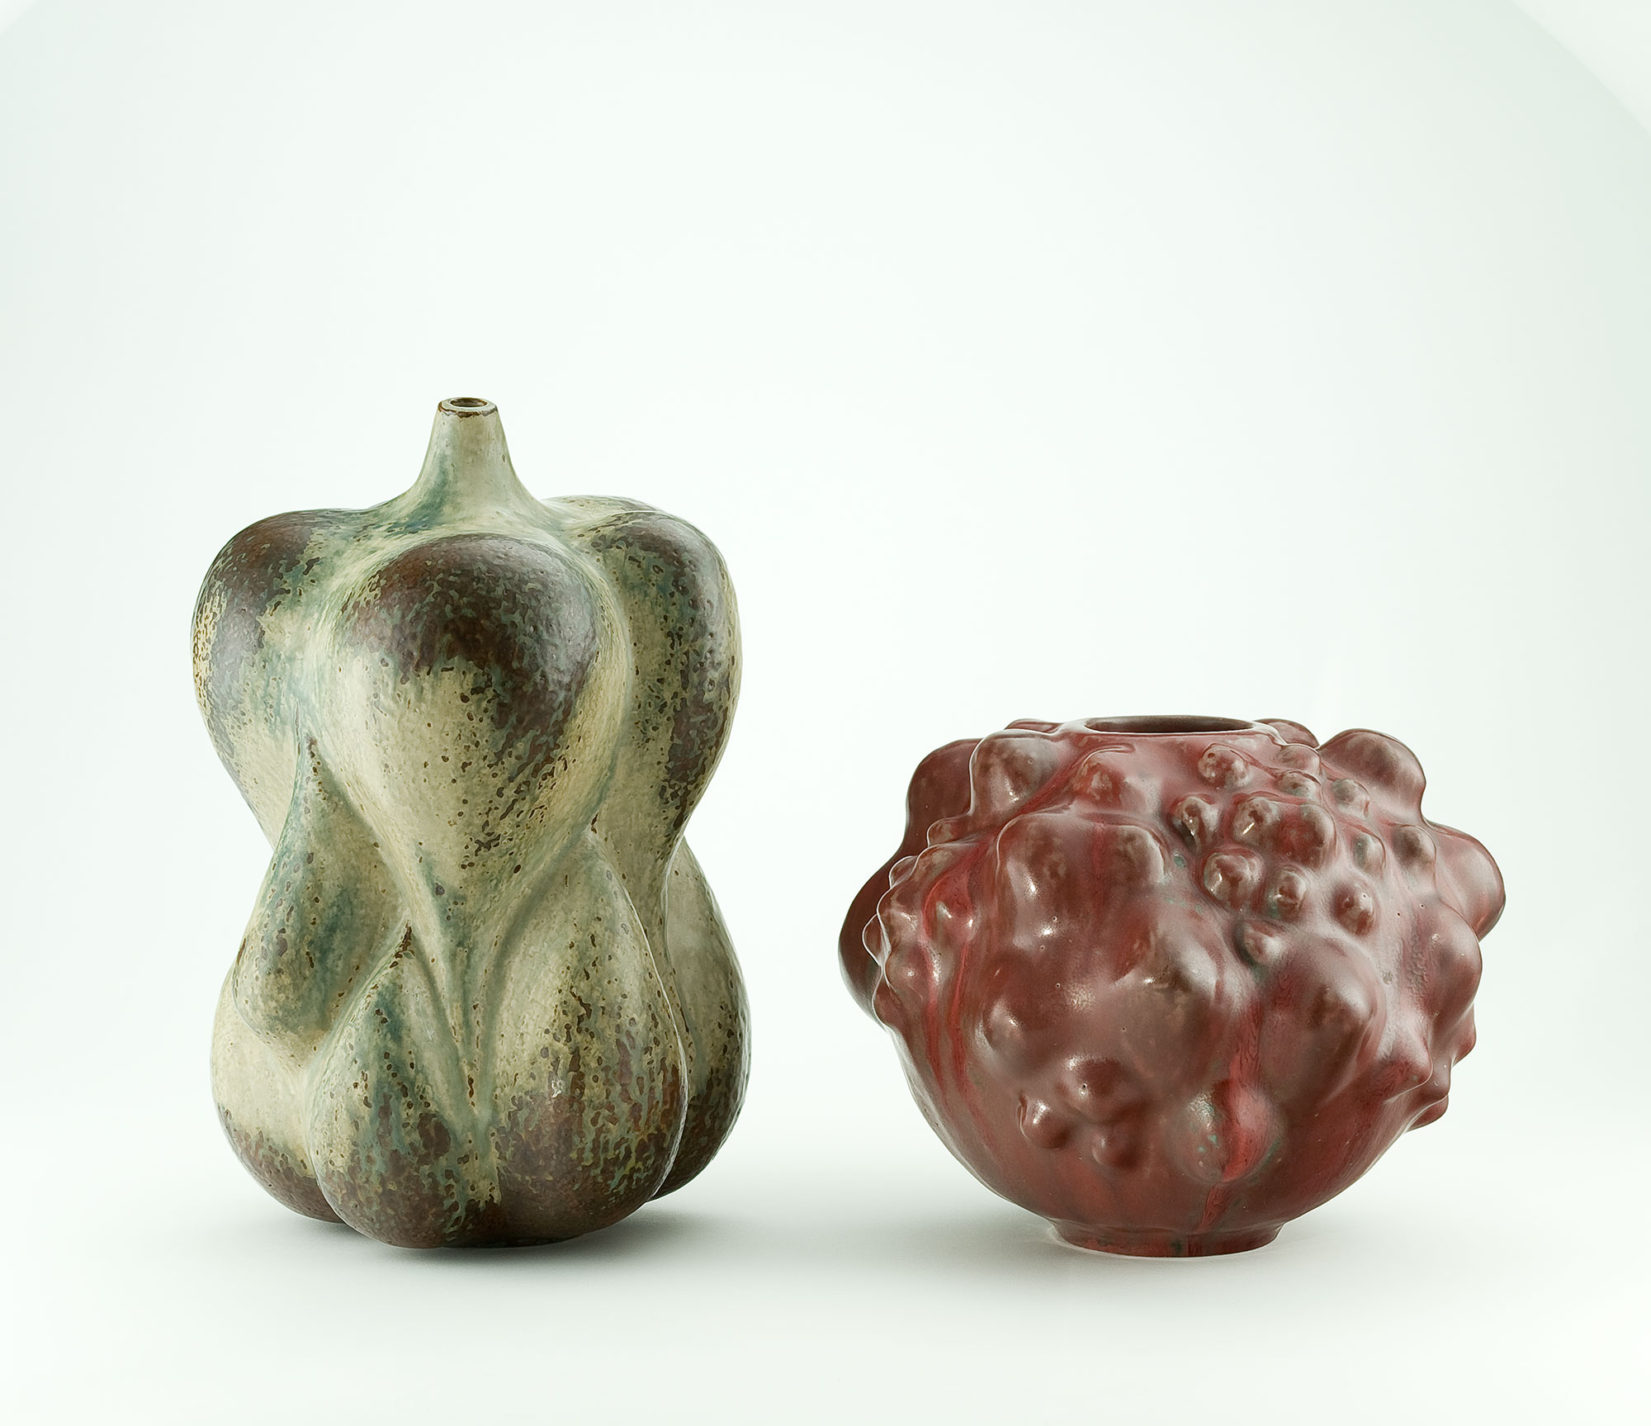 Two earthenware vases in organic forms. One in green resembles an assemblage of flower bulbs. The other in dark red has a bumpy surface like a gourd.